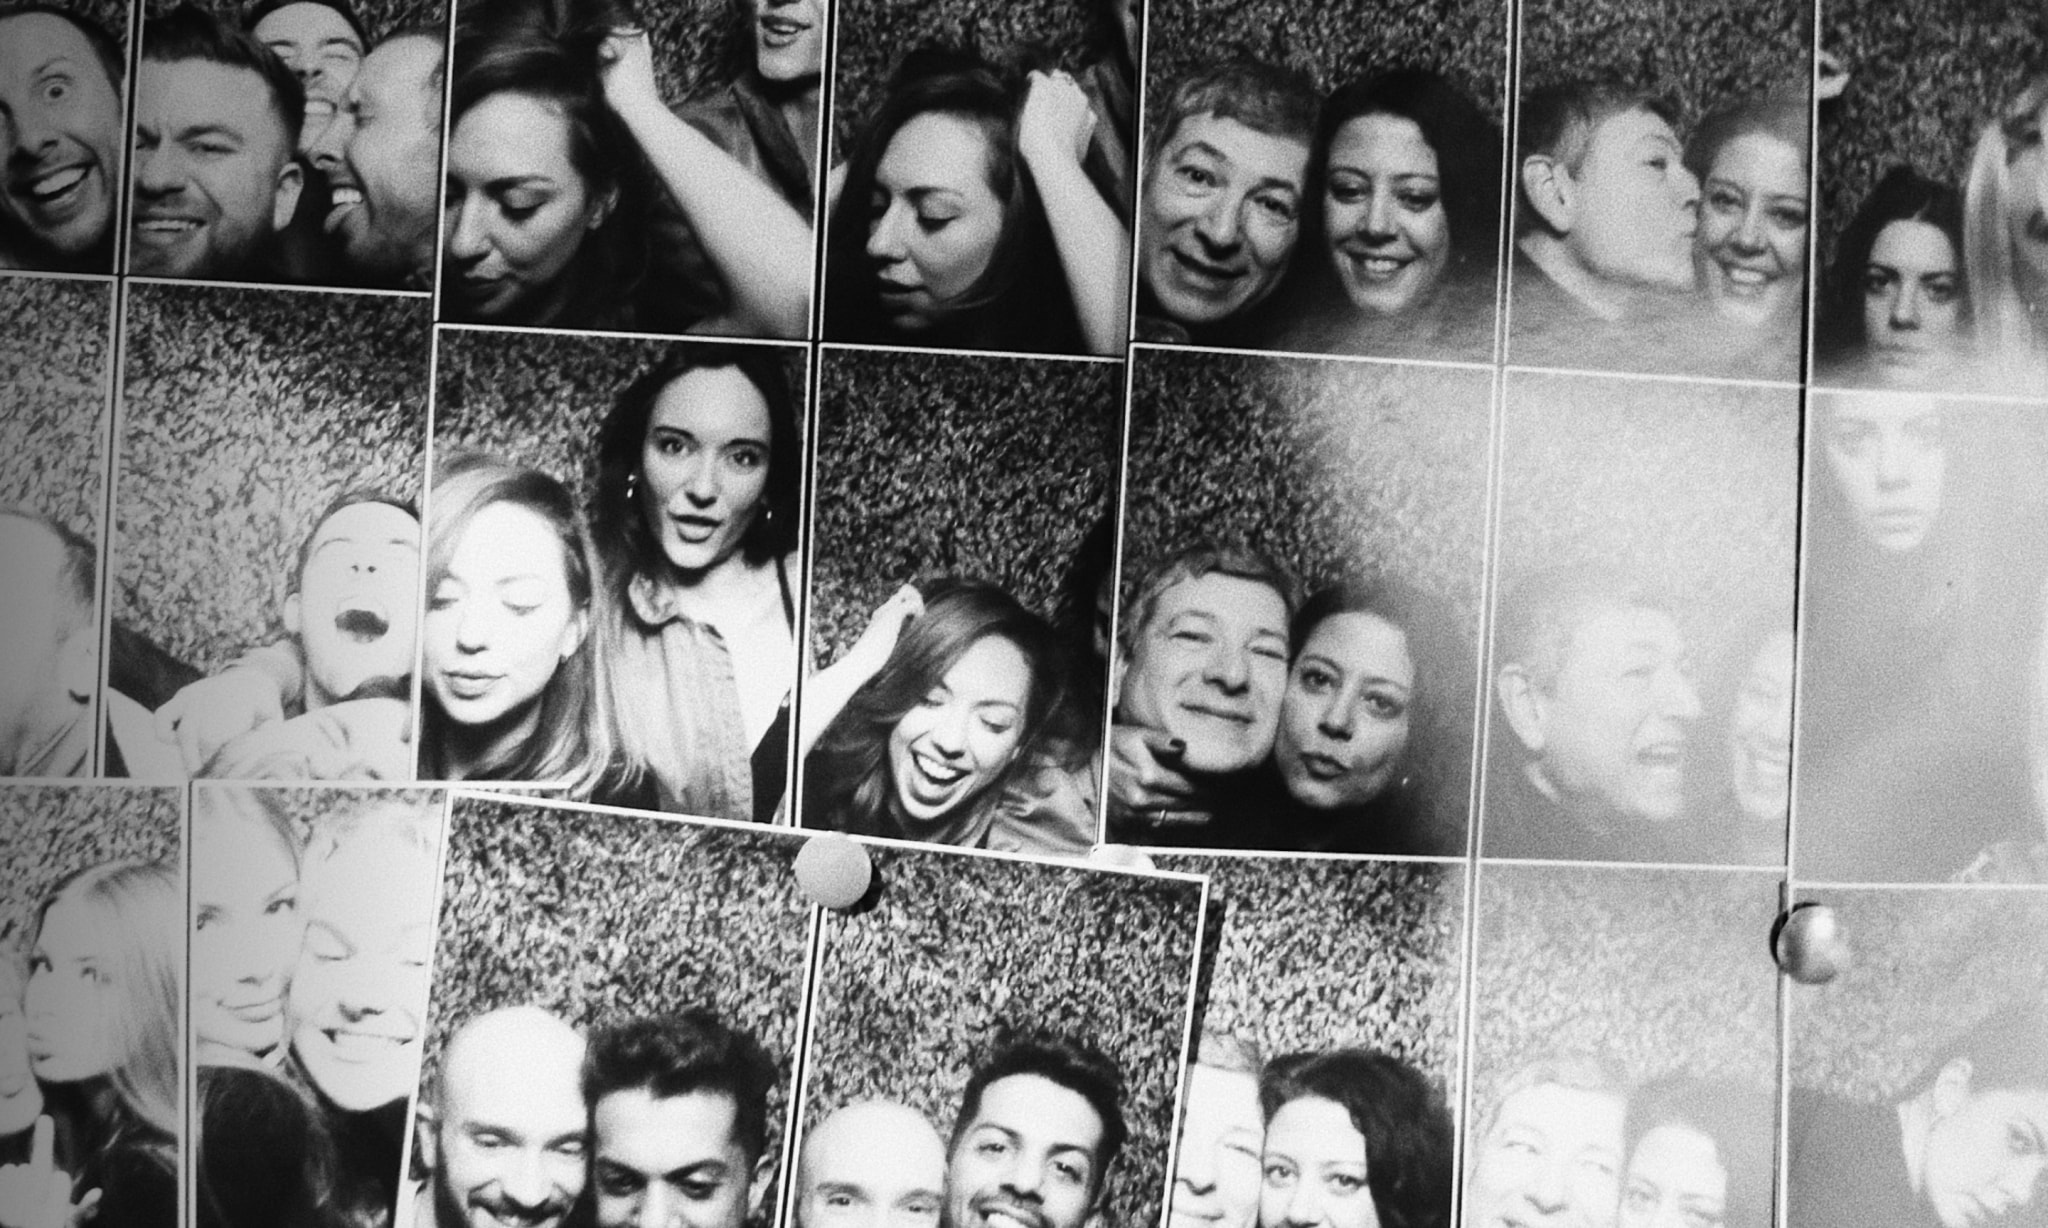 A selection of black and white photobooth photos of people having a good time.